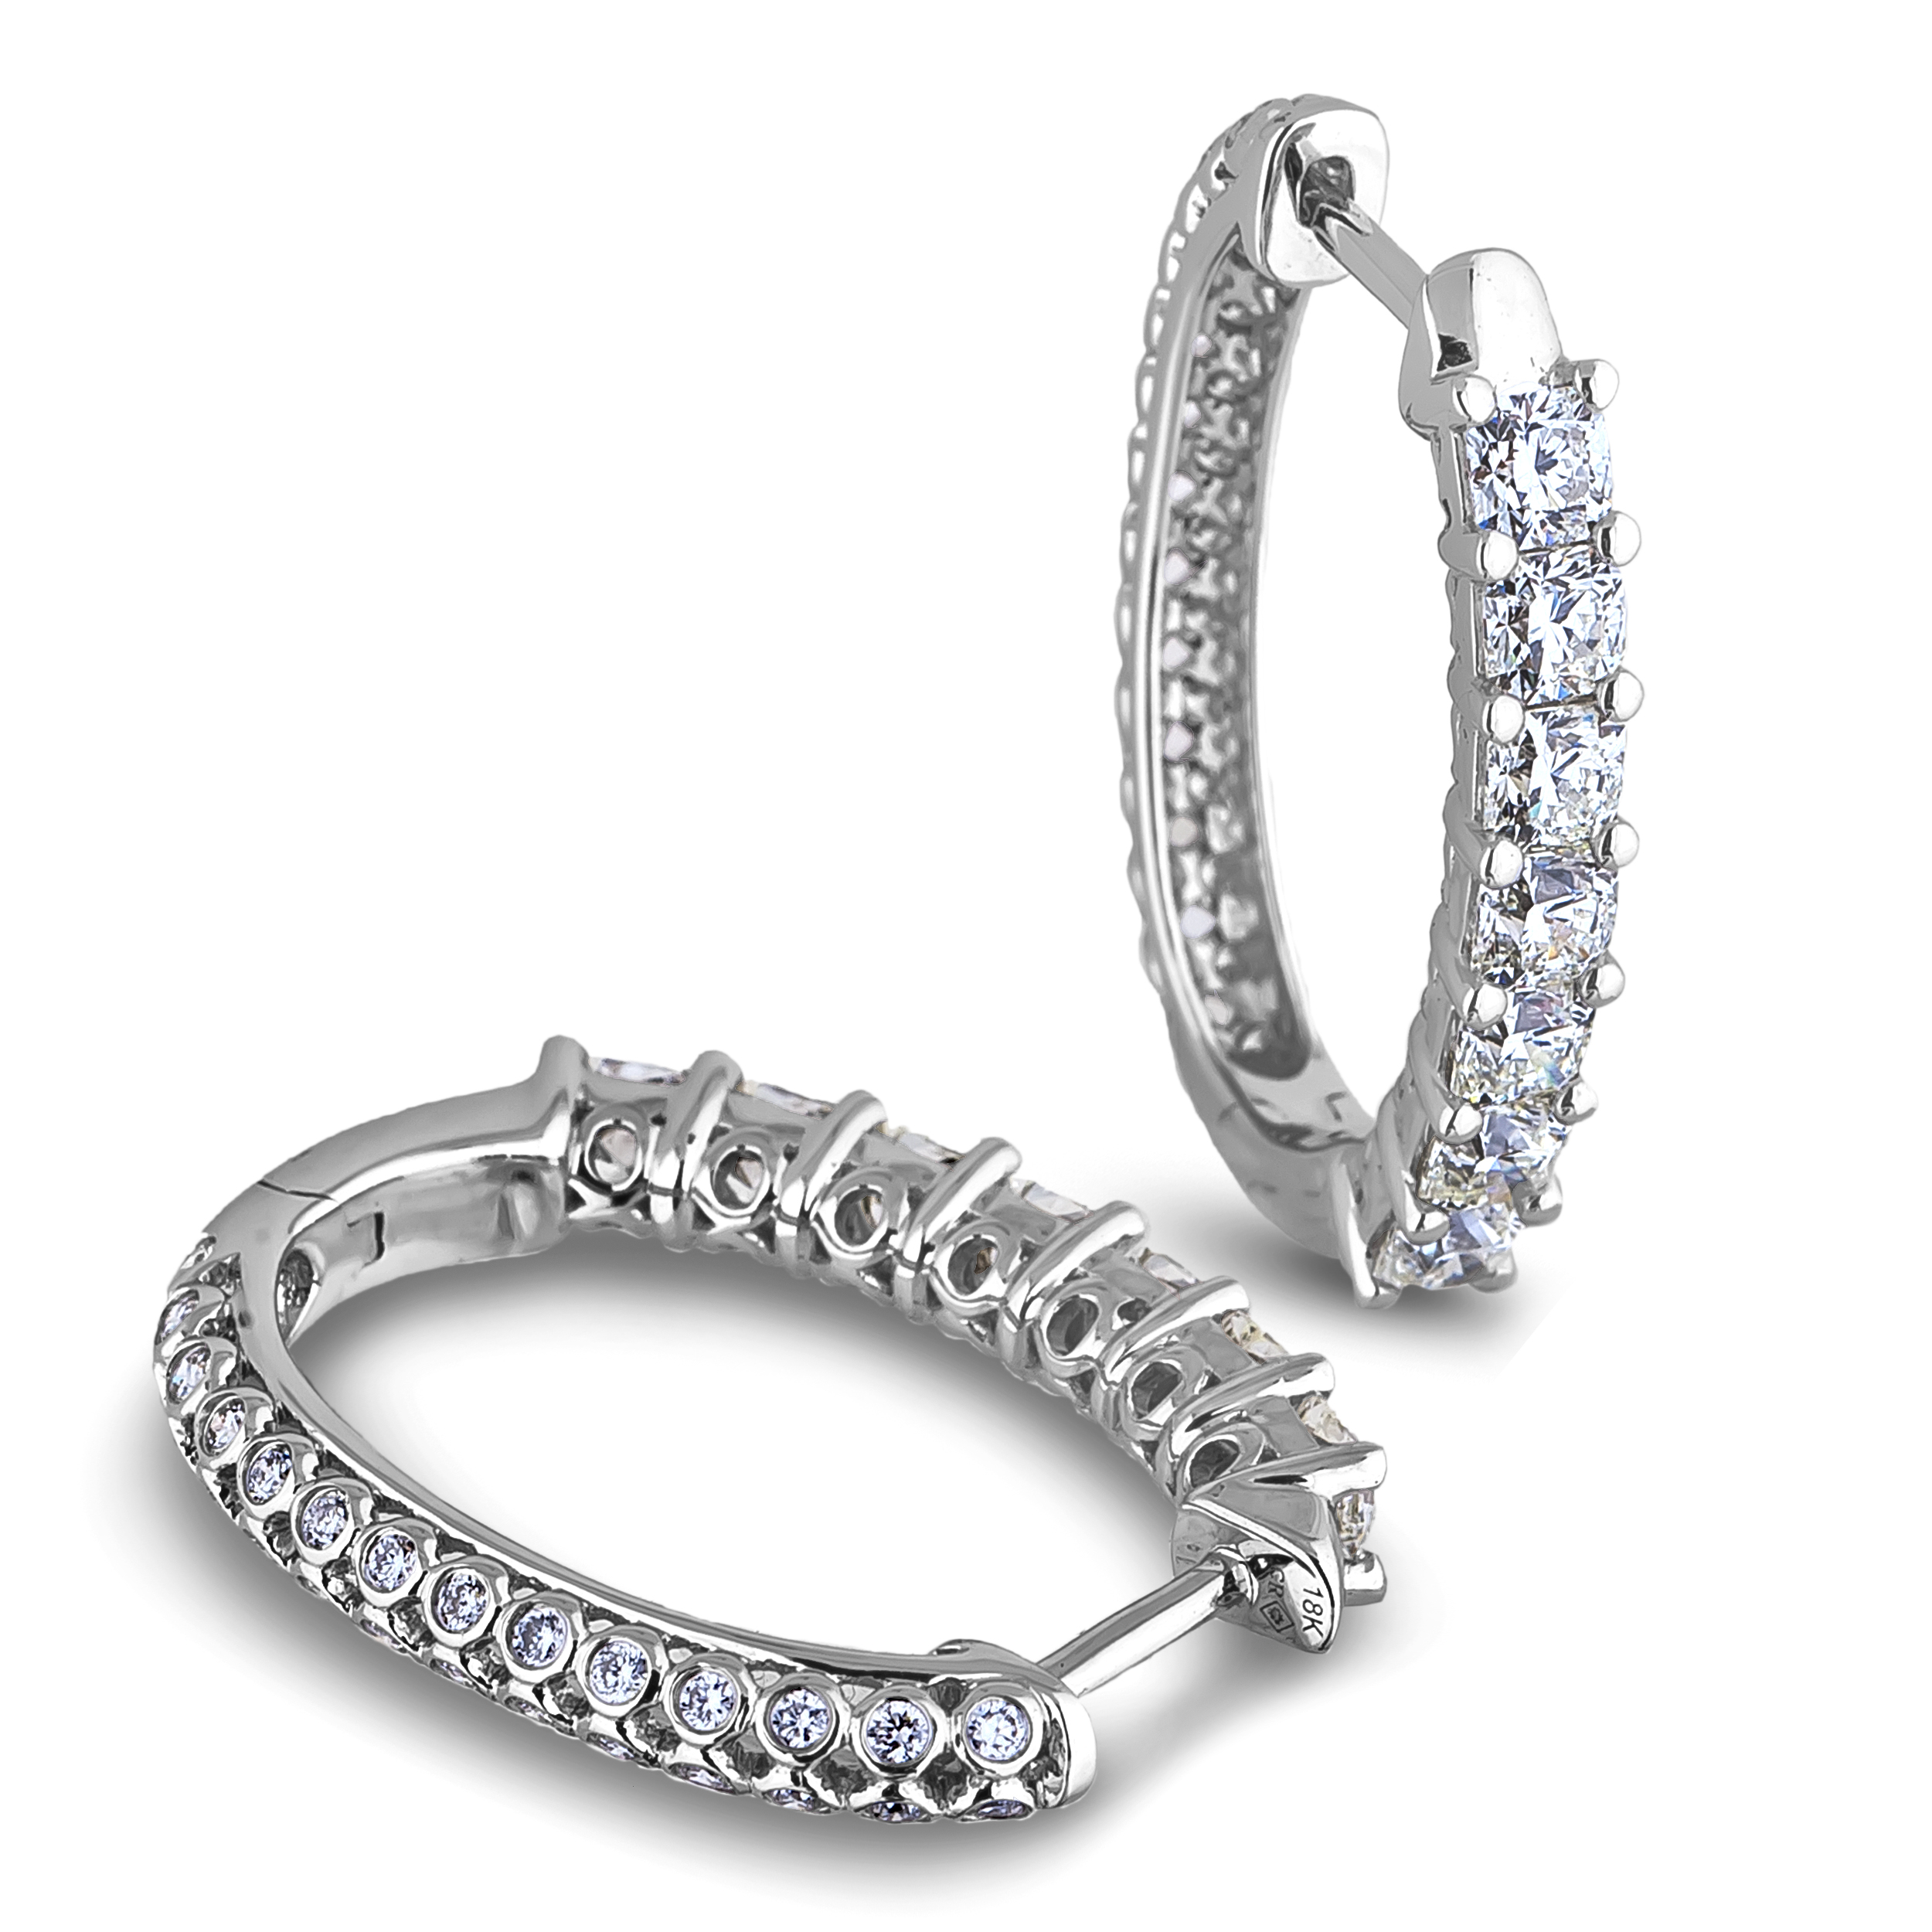 Diamond Hoop Earrings SGE349 (Earrings)